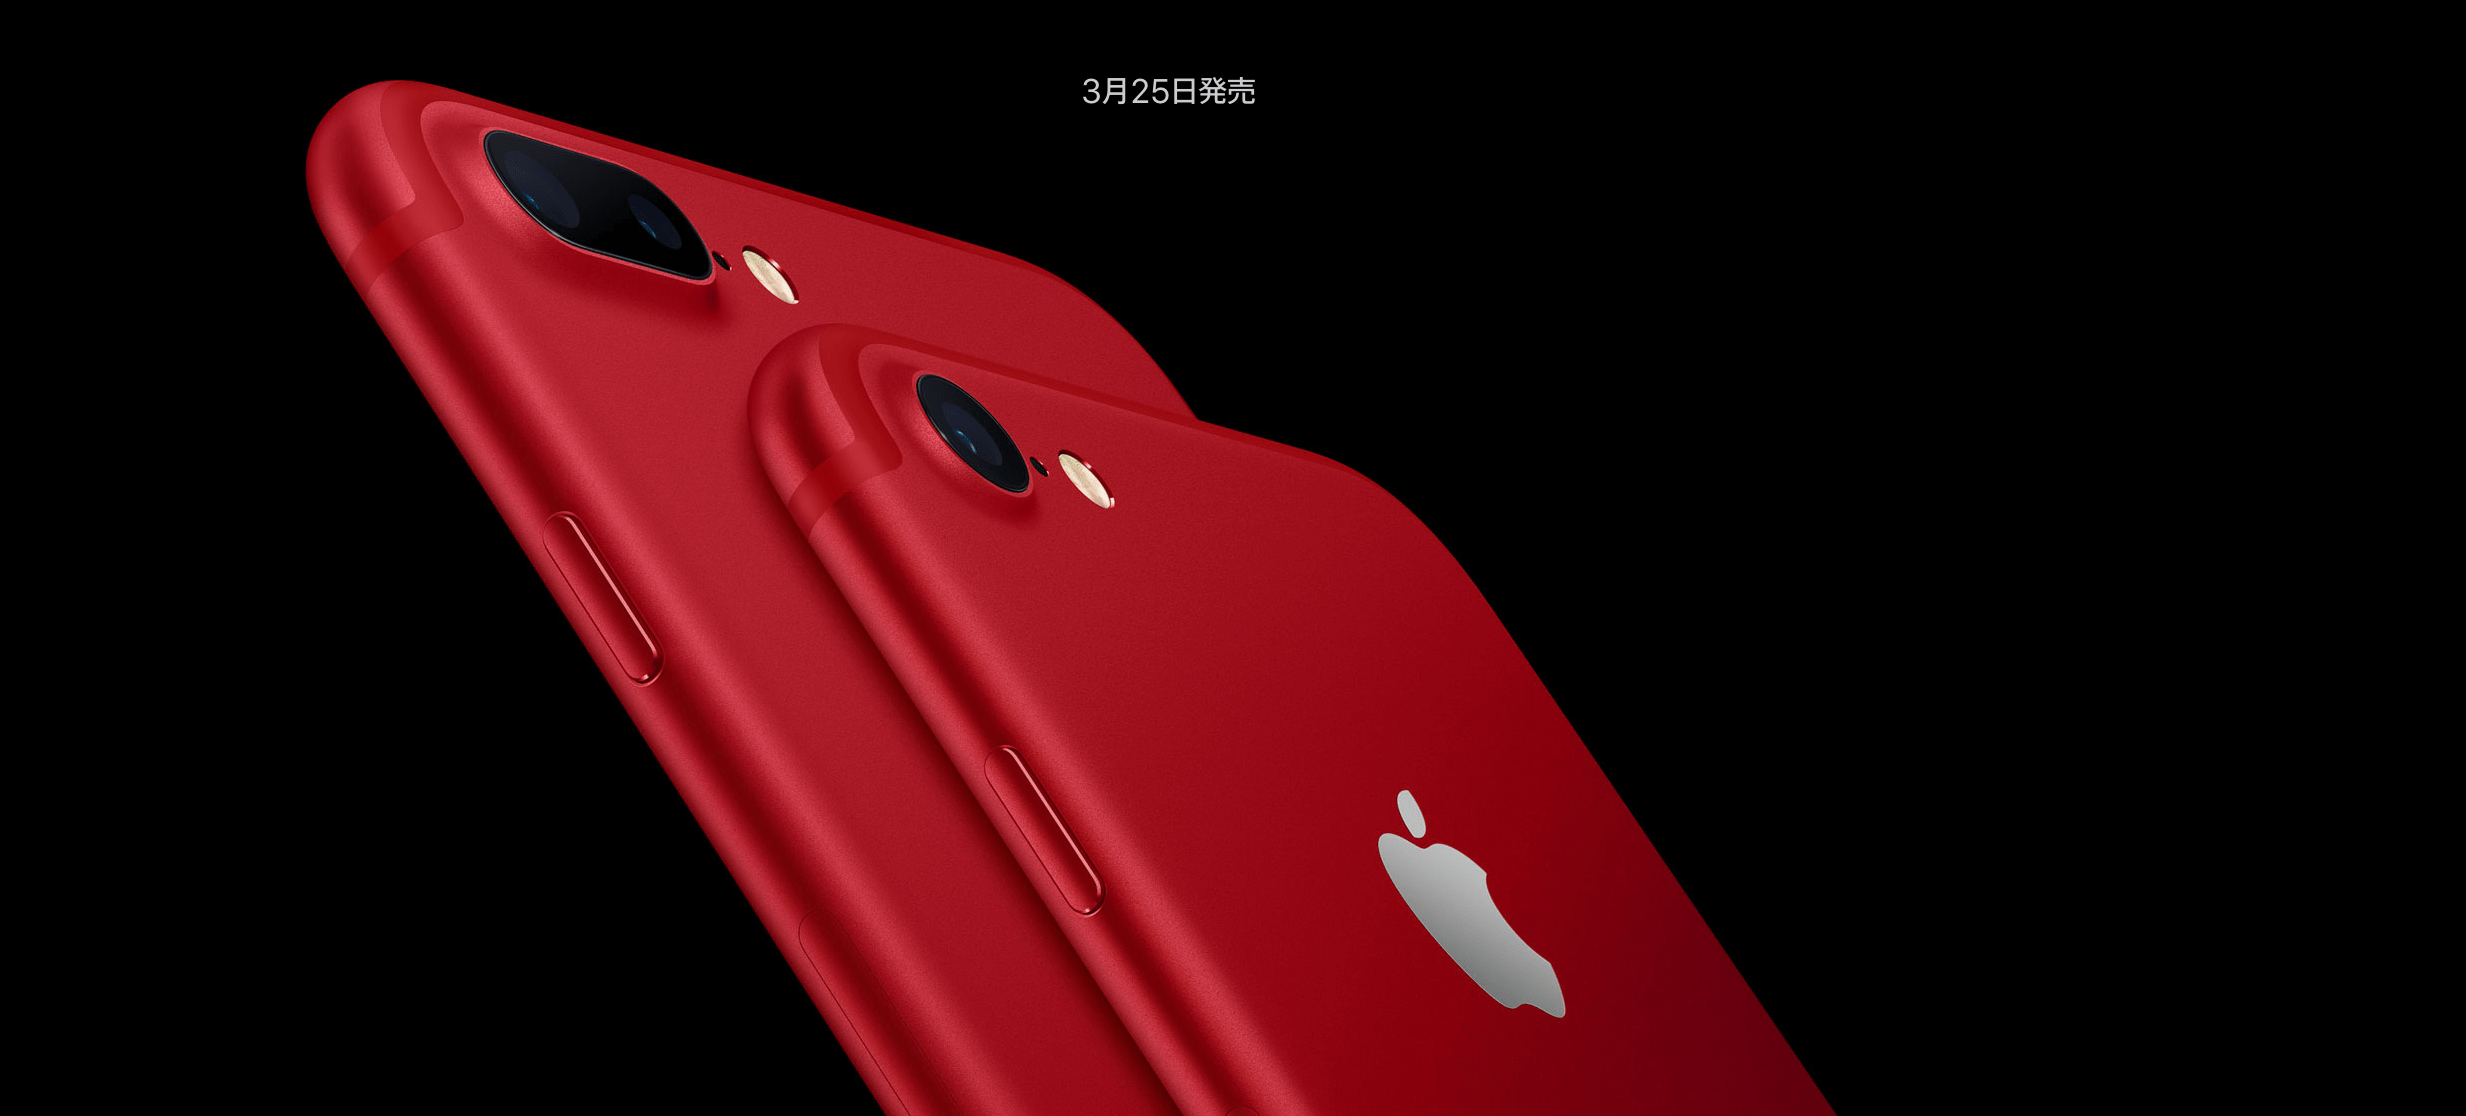 iPhone 7/7 plus product red